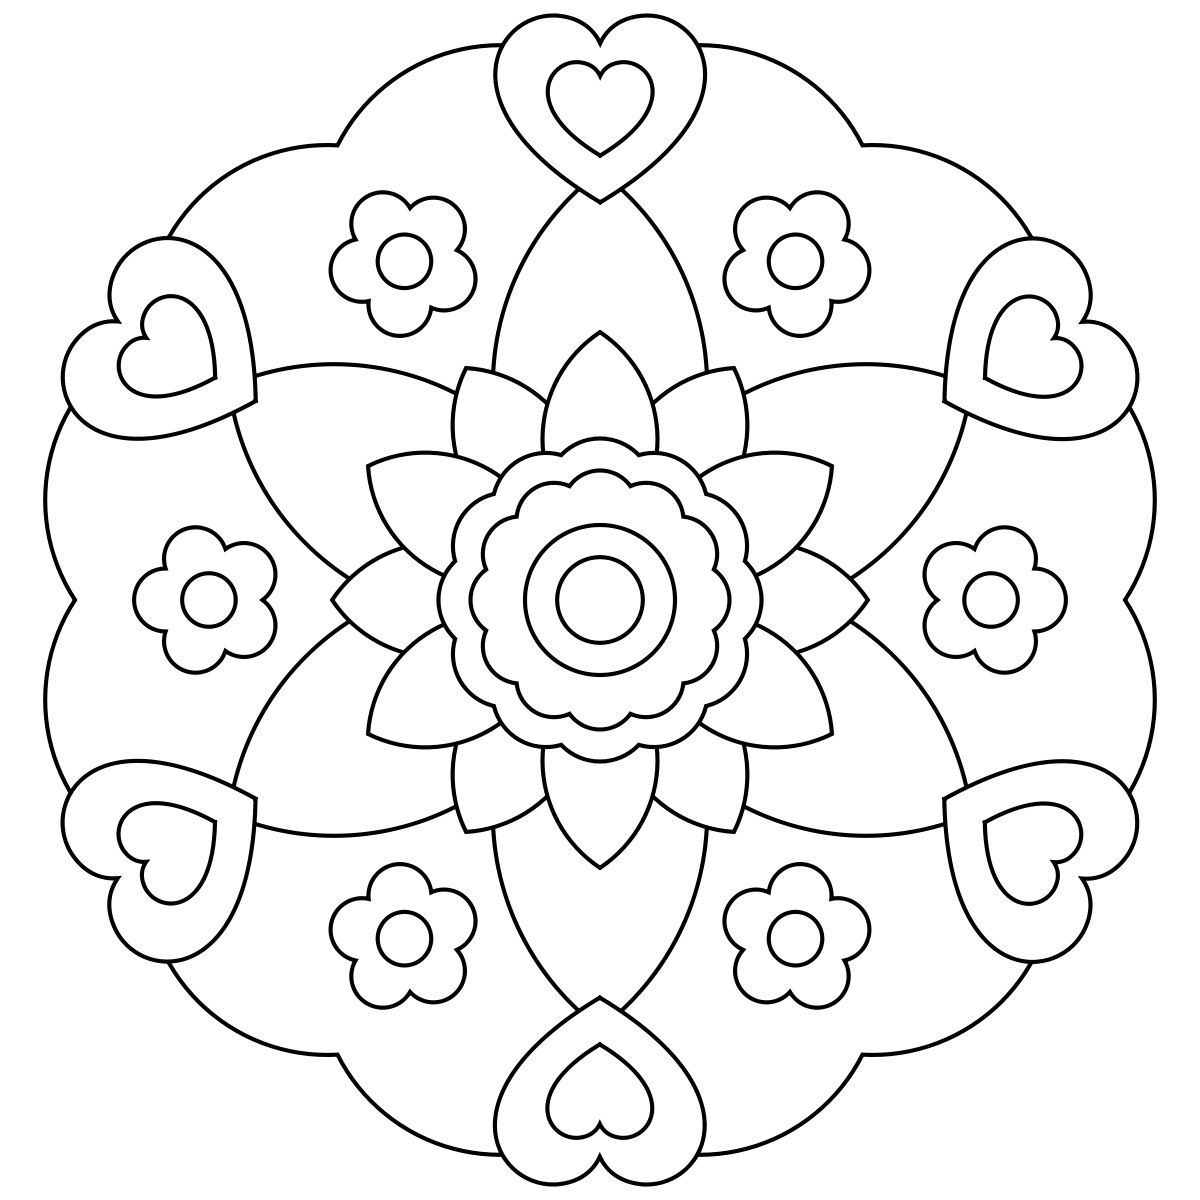 Free printable mandala coloring pages pictures to color